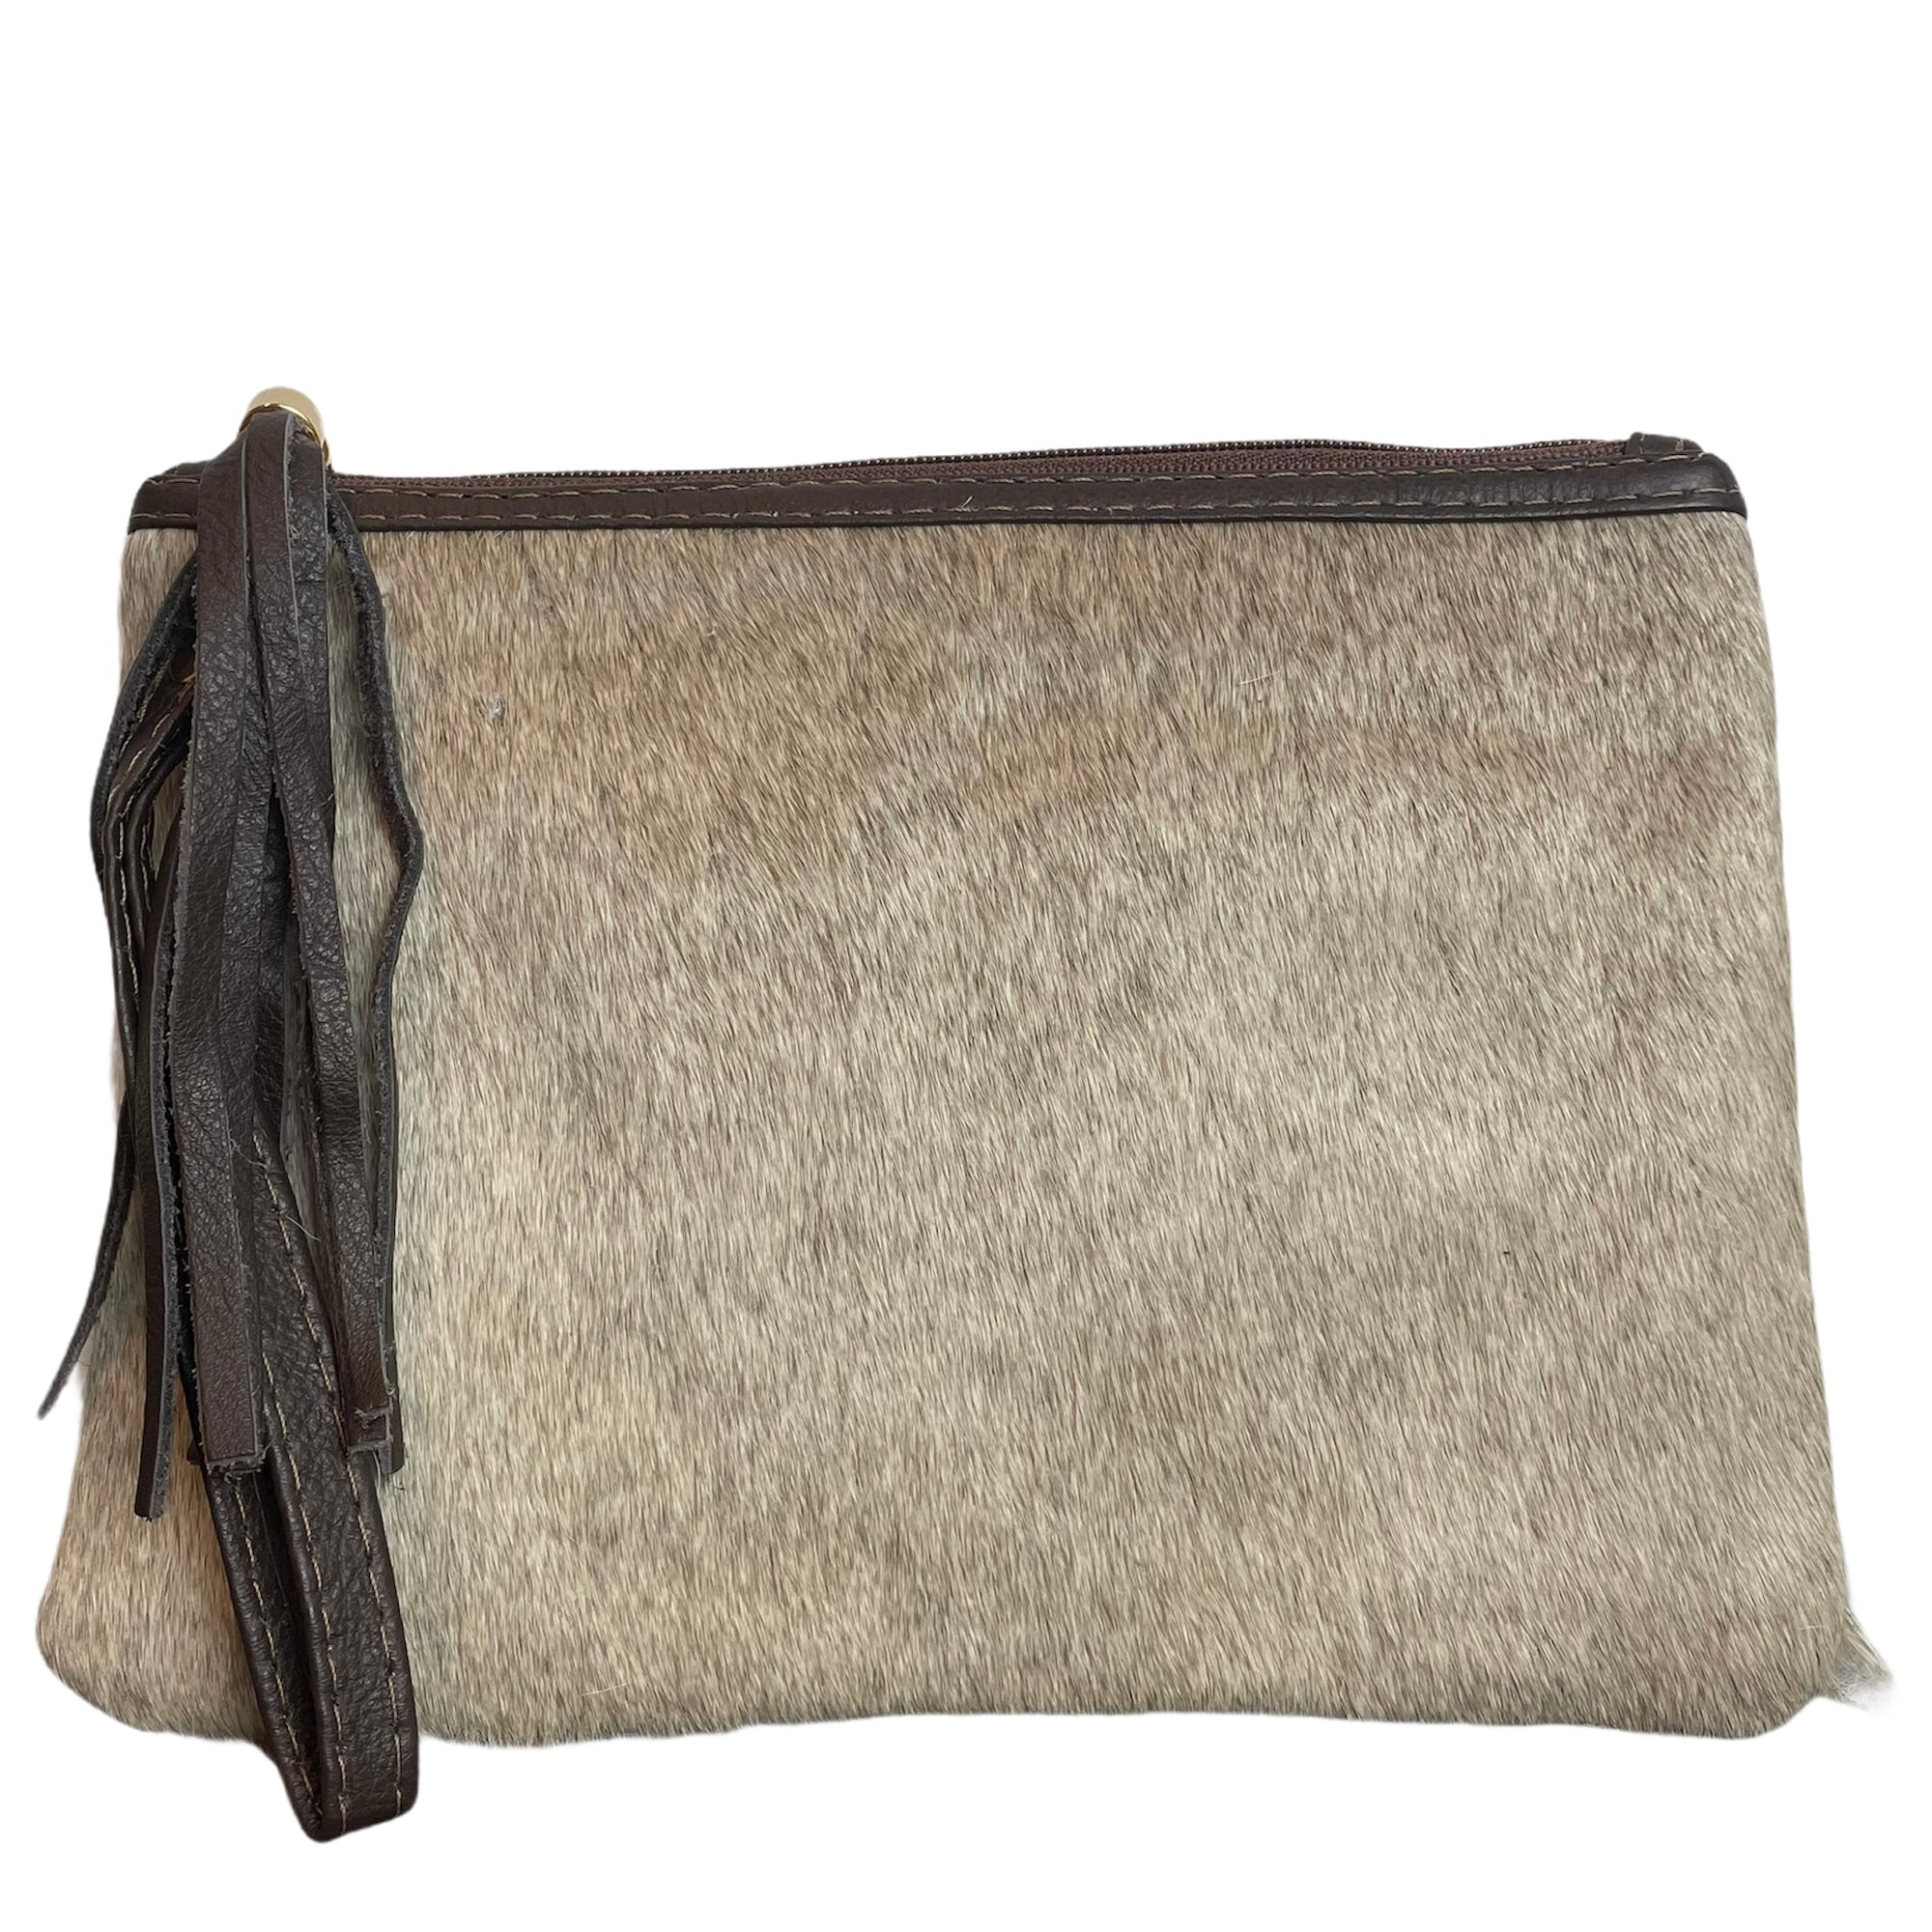 COWHIDE EVERYDAY SMALL CLUTCH - LIGHT CHAMPAGNE. Izel Designs